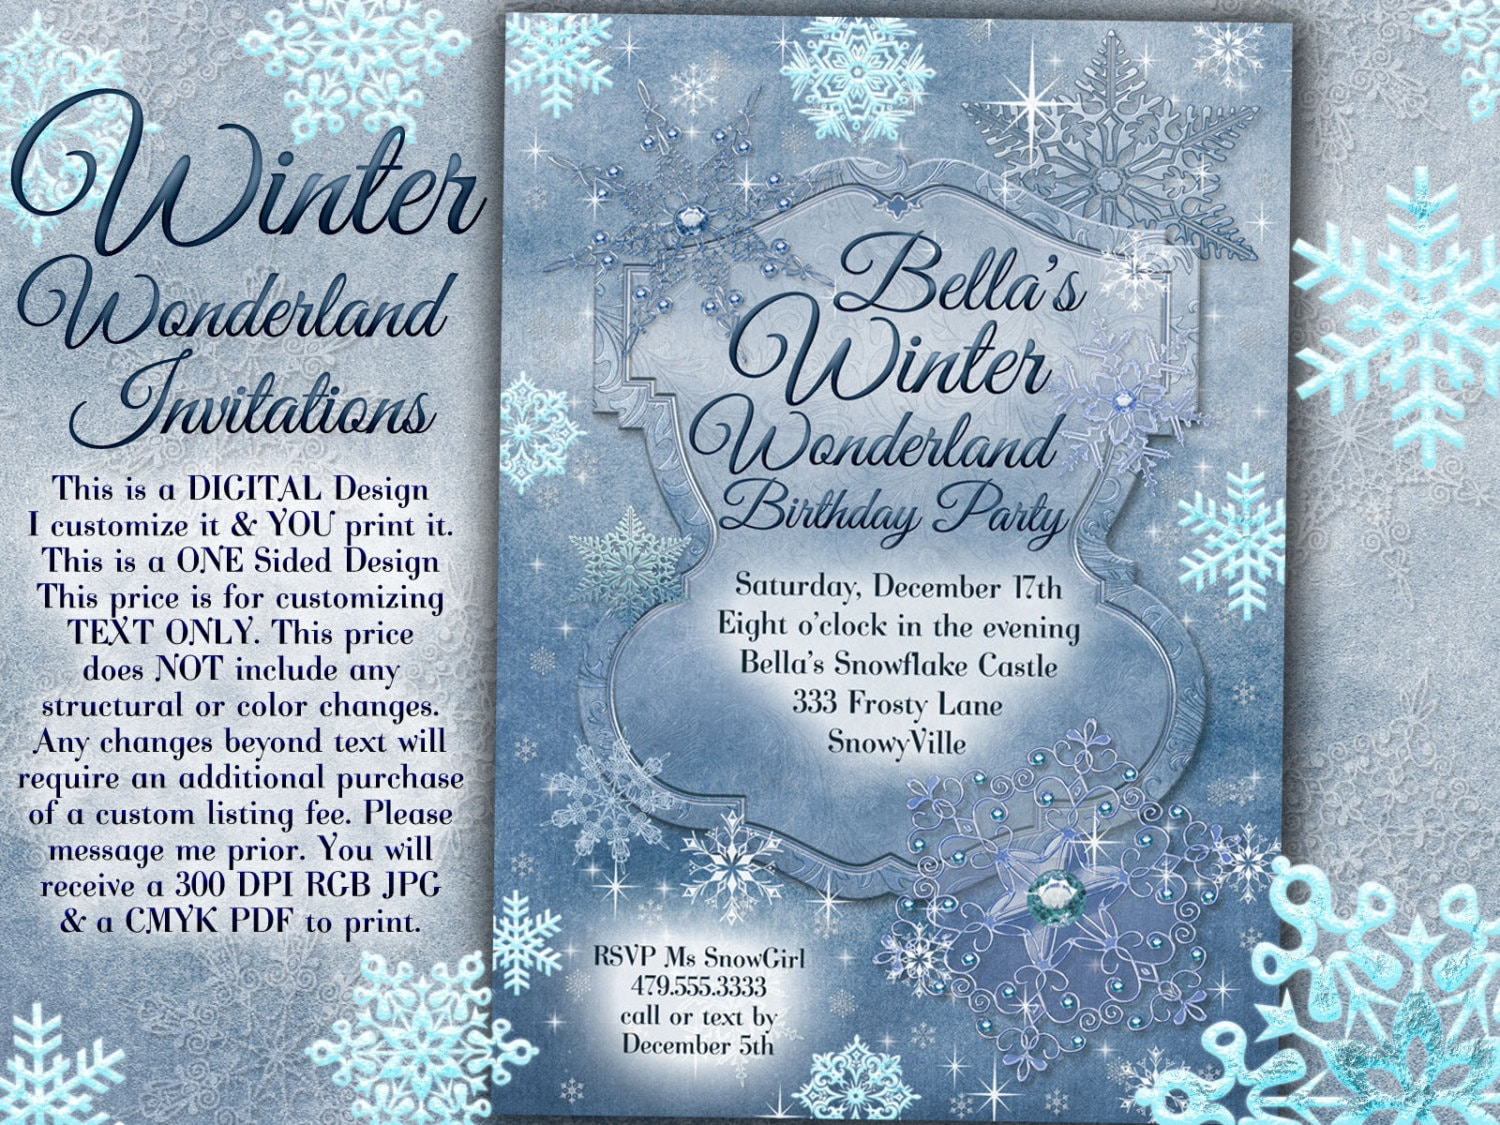 Party Invitations Blue Silver Snowflake blank invitations holiday